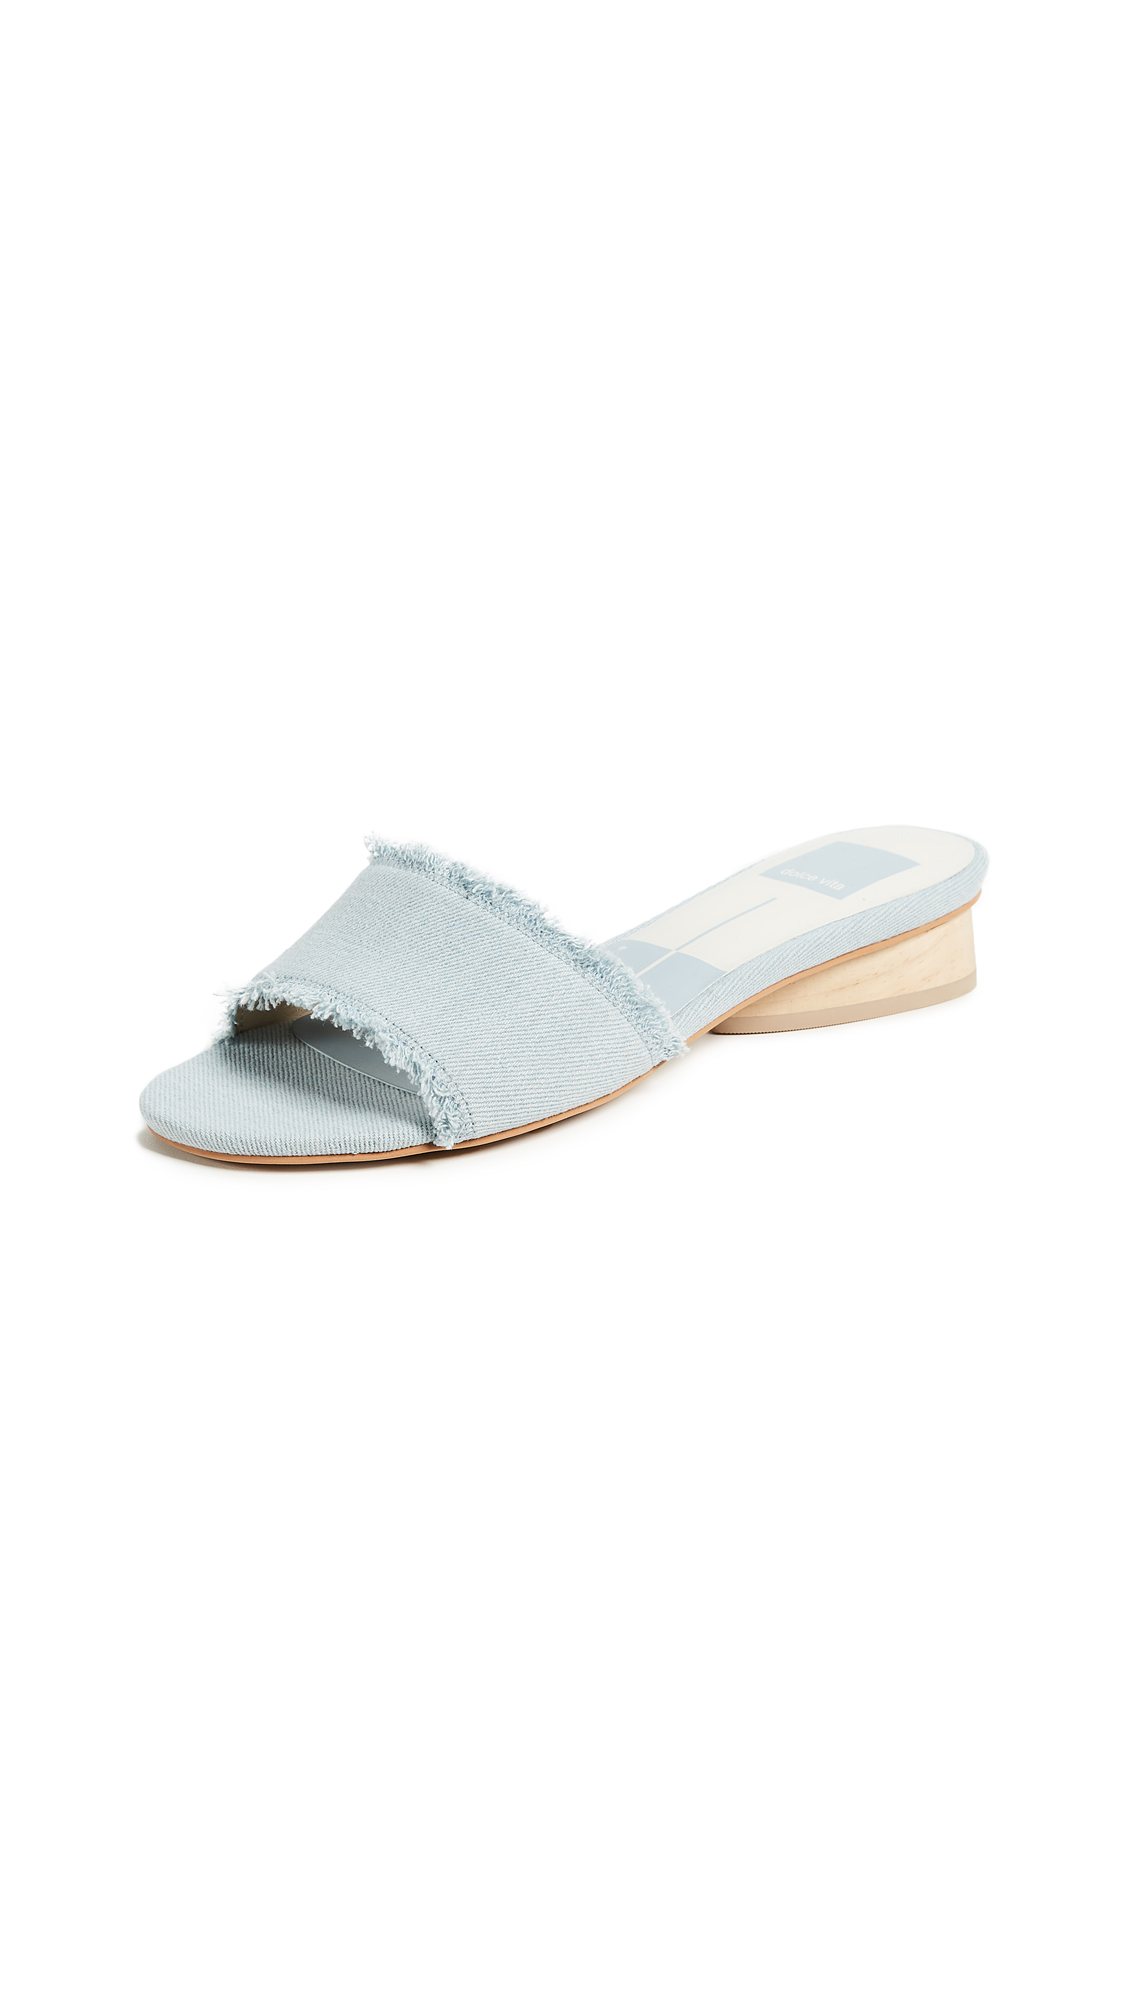 Dolce Vita Adalea Slides - Light Blue